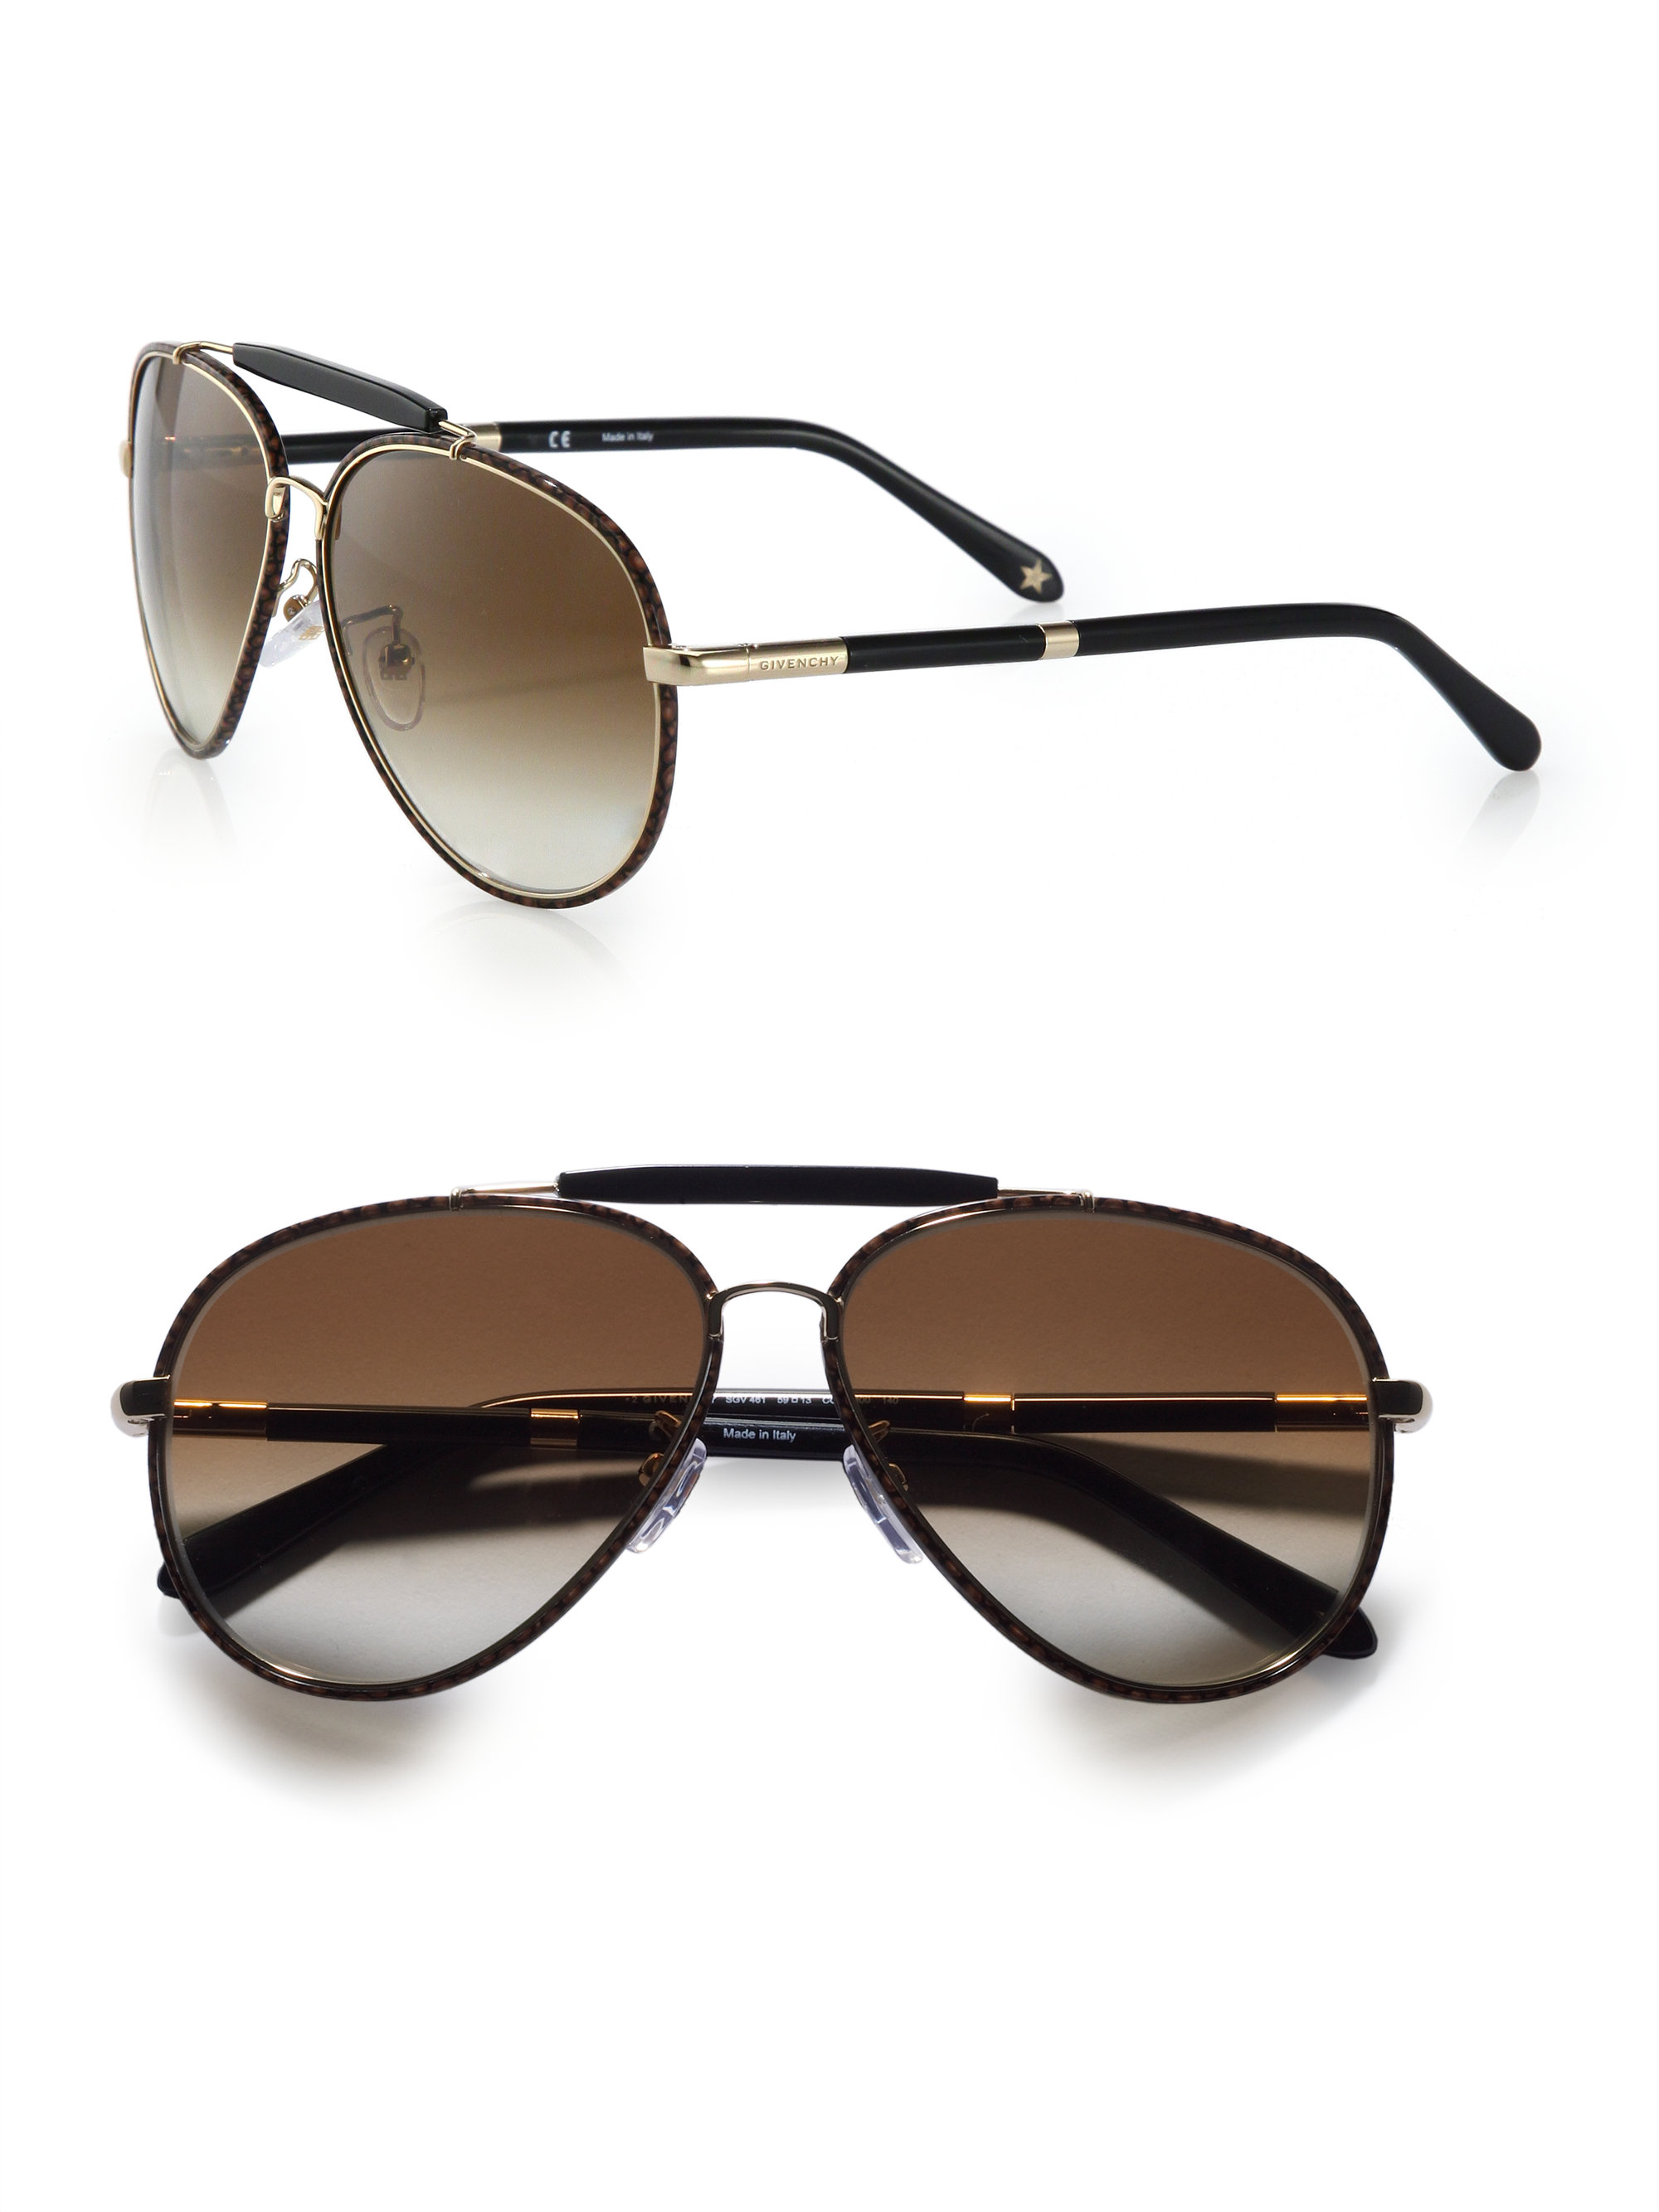 3222c060761 Lyst - Givenchy Metal Aviator Sunglasses in Brown for Men